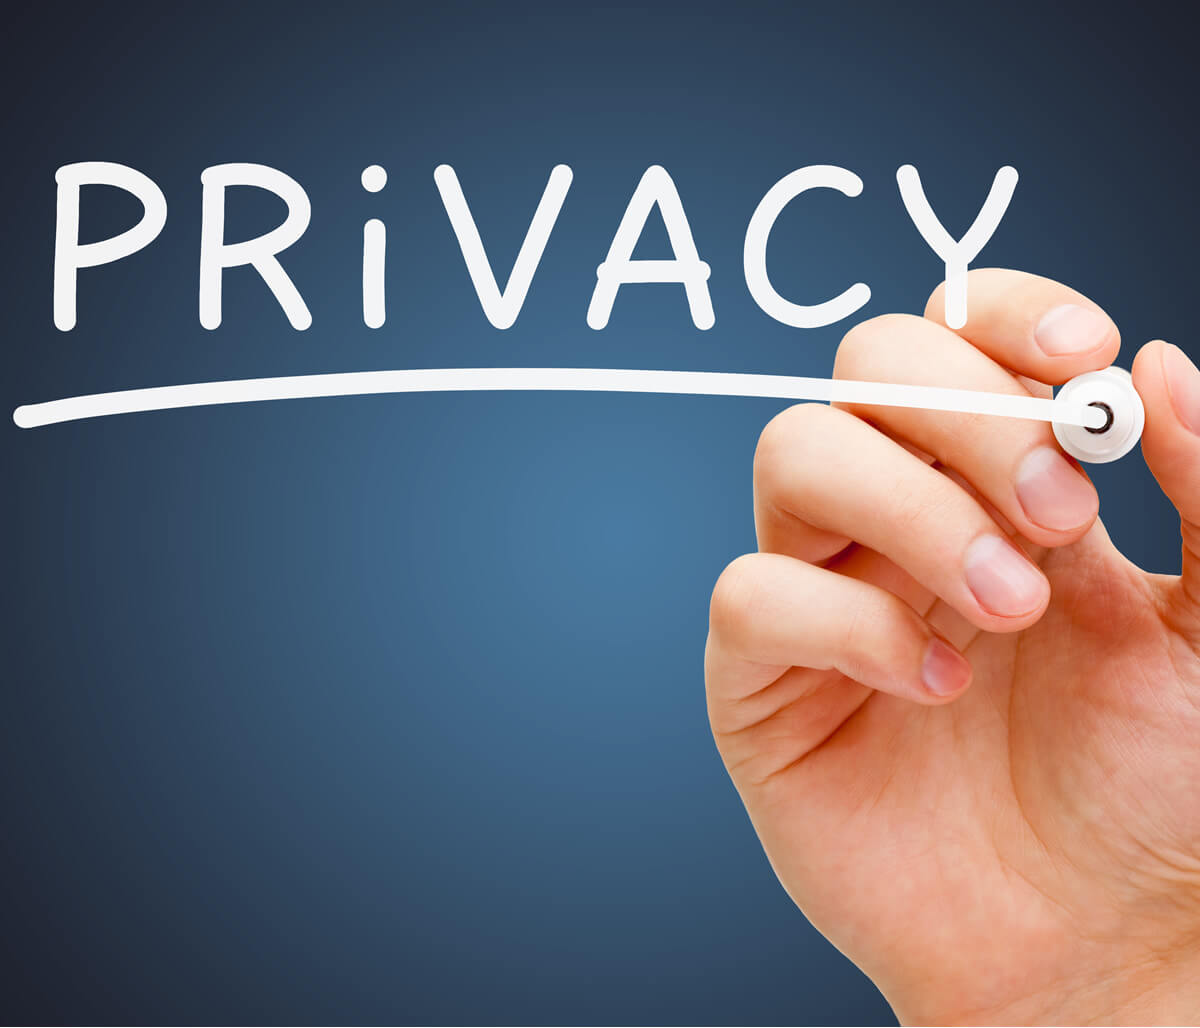 privacy policy learnprn